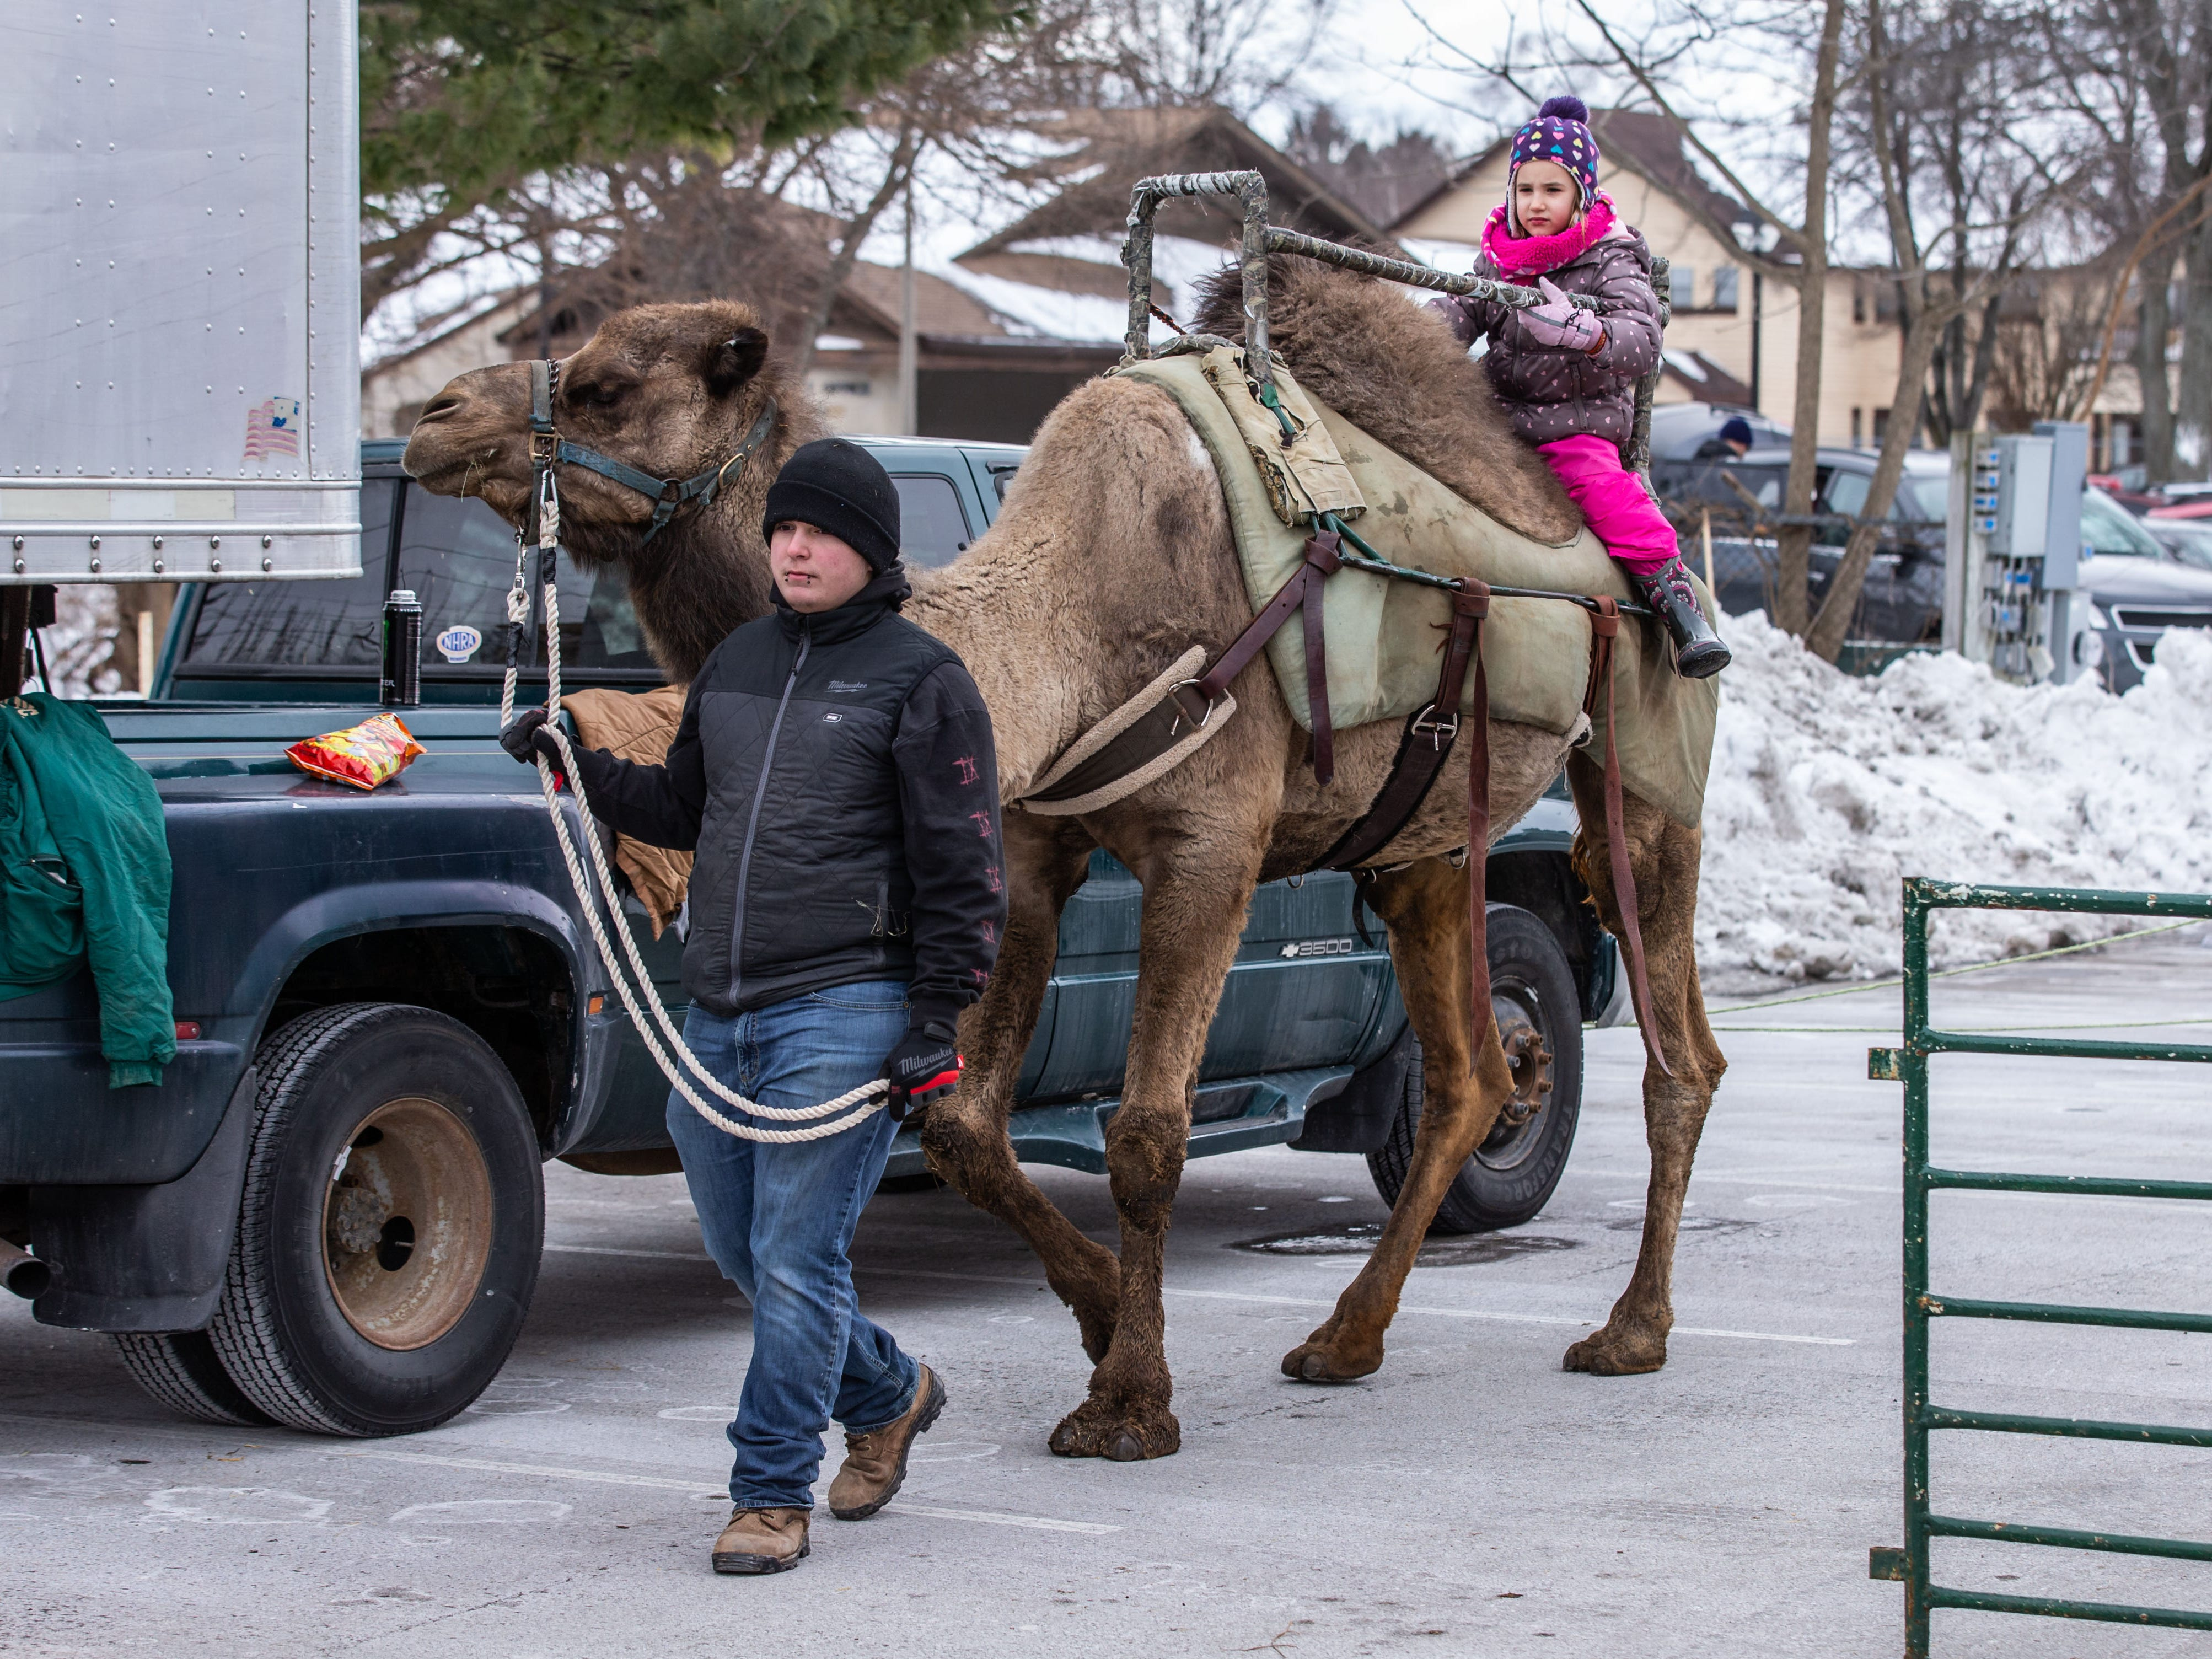 Six-year-old Leighana Rakun of Hingham rides a camel during Cedarburg's Winter Festival on Saturday, Feb. 16, 2019. The annual event features a grand parade, bed racing, ice carving, camel rides, a petting zoo, food, games and more.